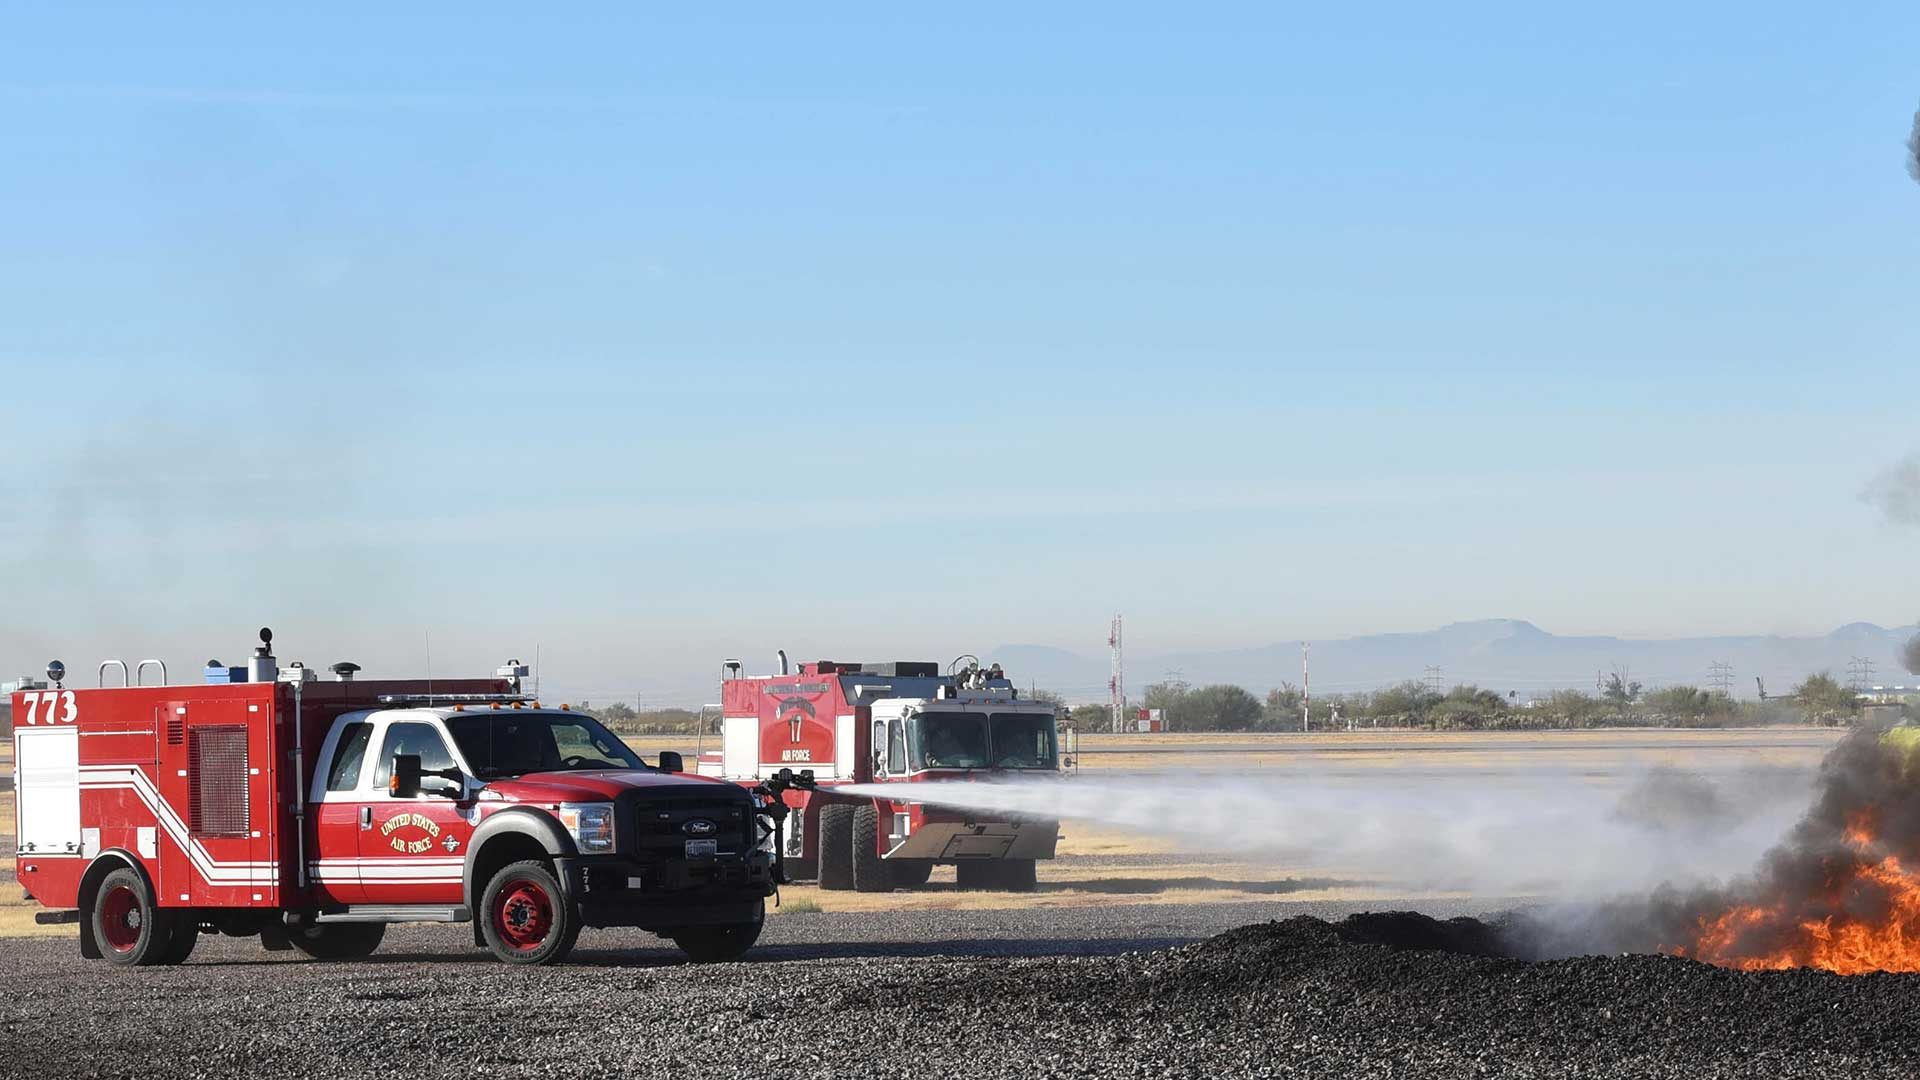 A January 2018 firefighting exercise with the 162nd Wing at Davis-Monthan Air Force Base in Tucson, Arizona.